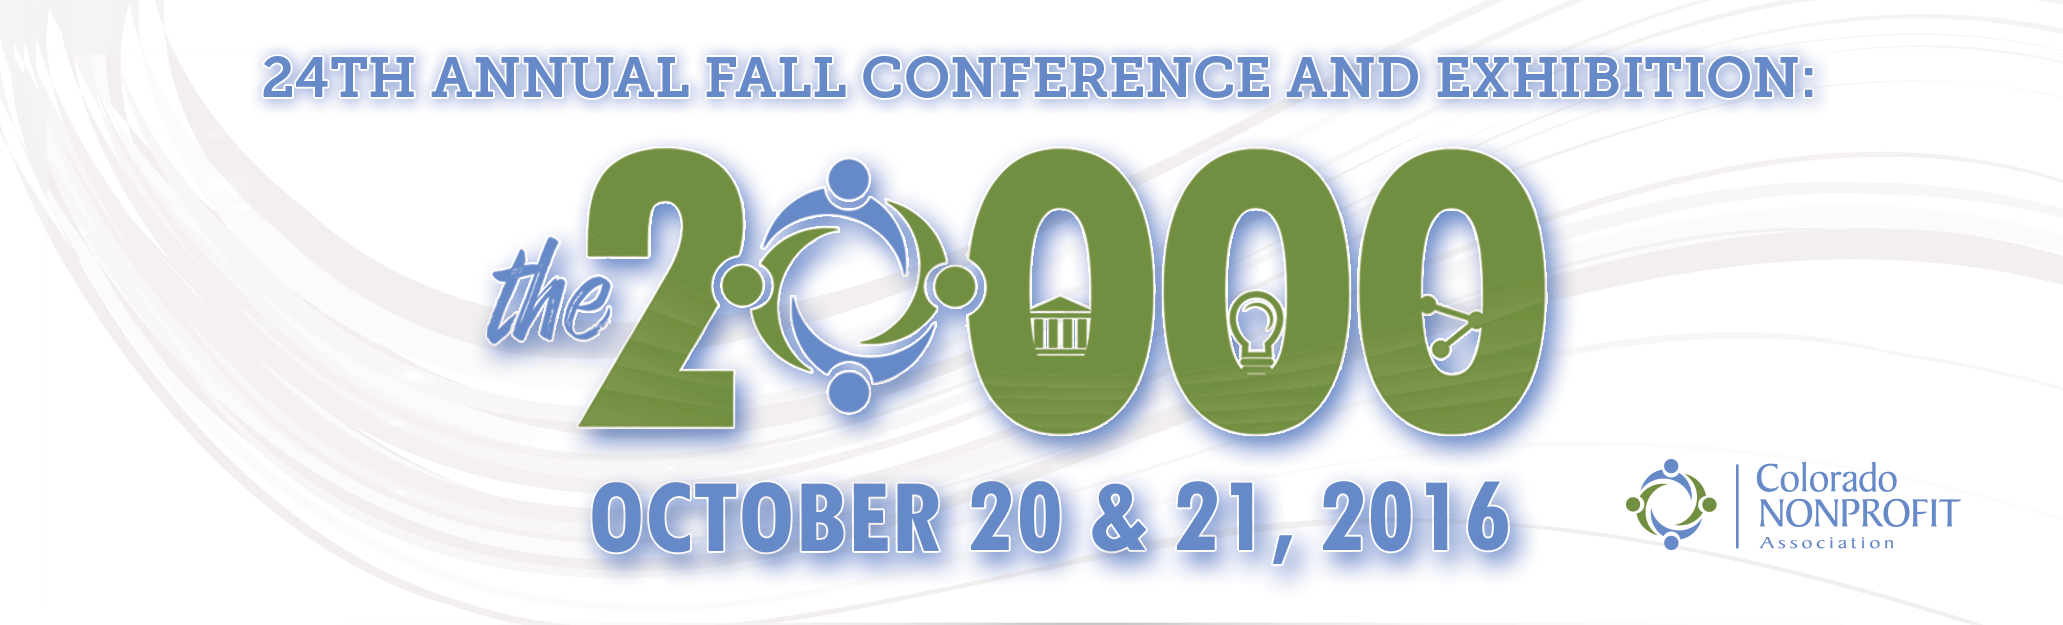 24TH ANNUAL FALL CONFERENCE AND EXHIBITION